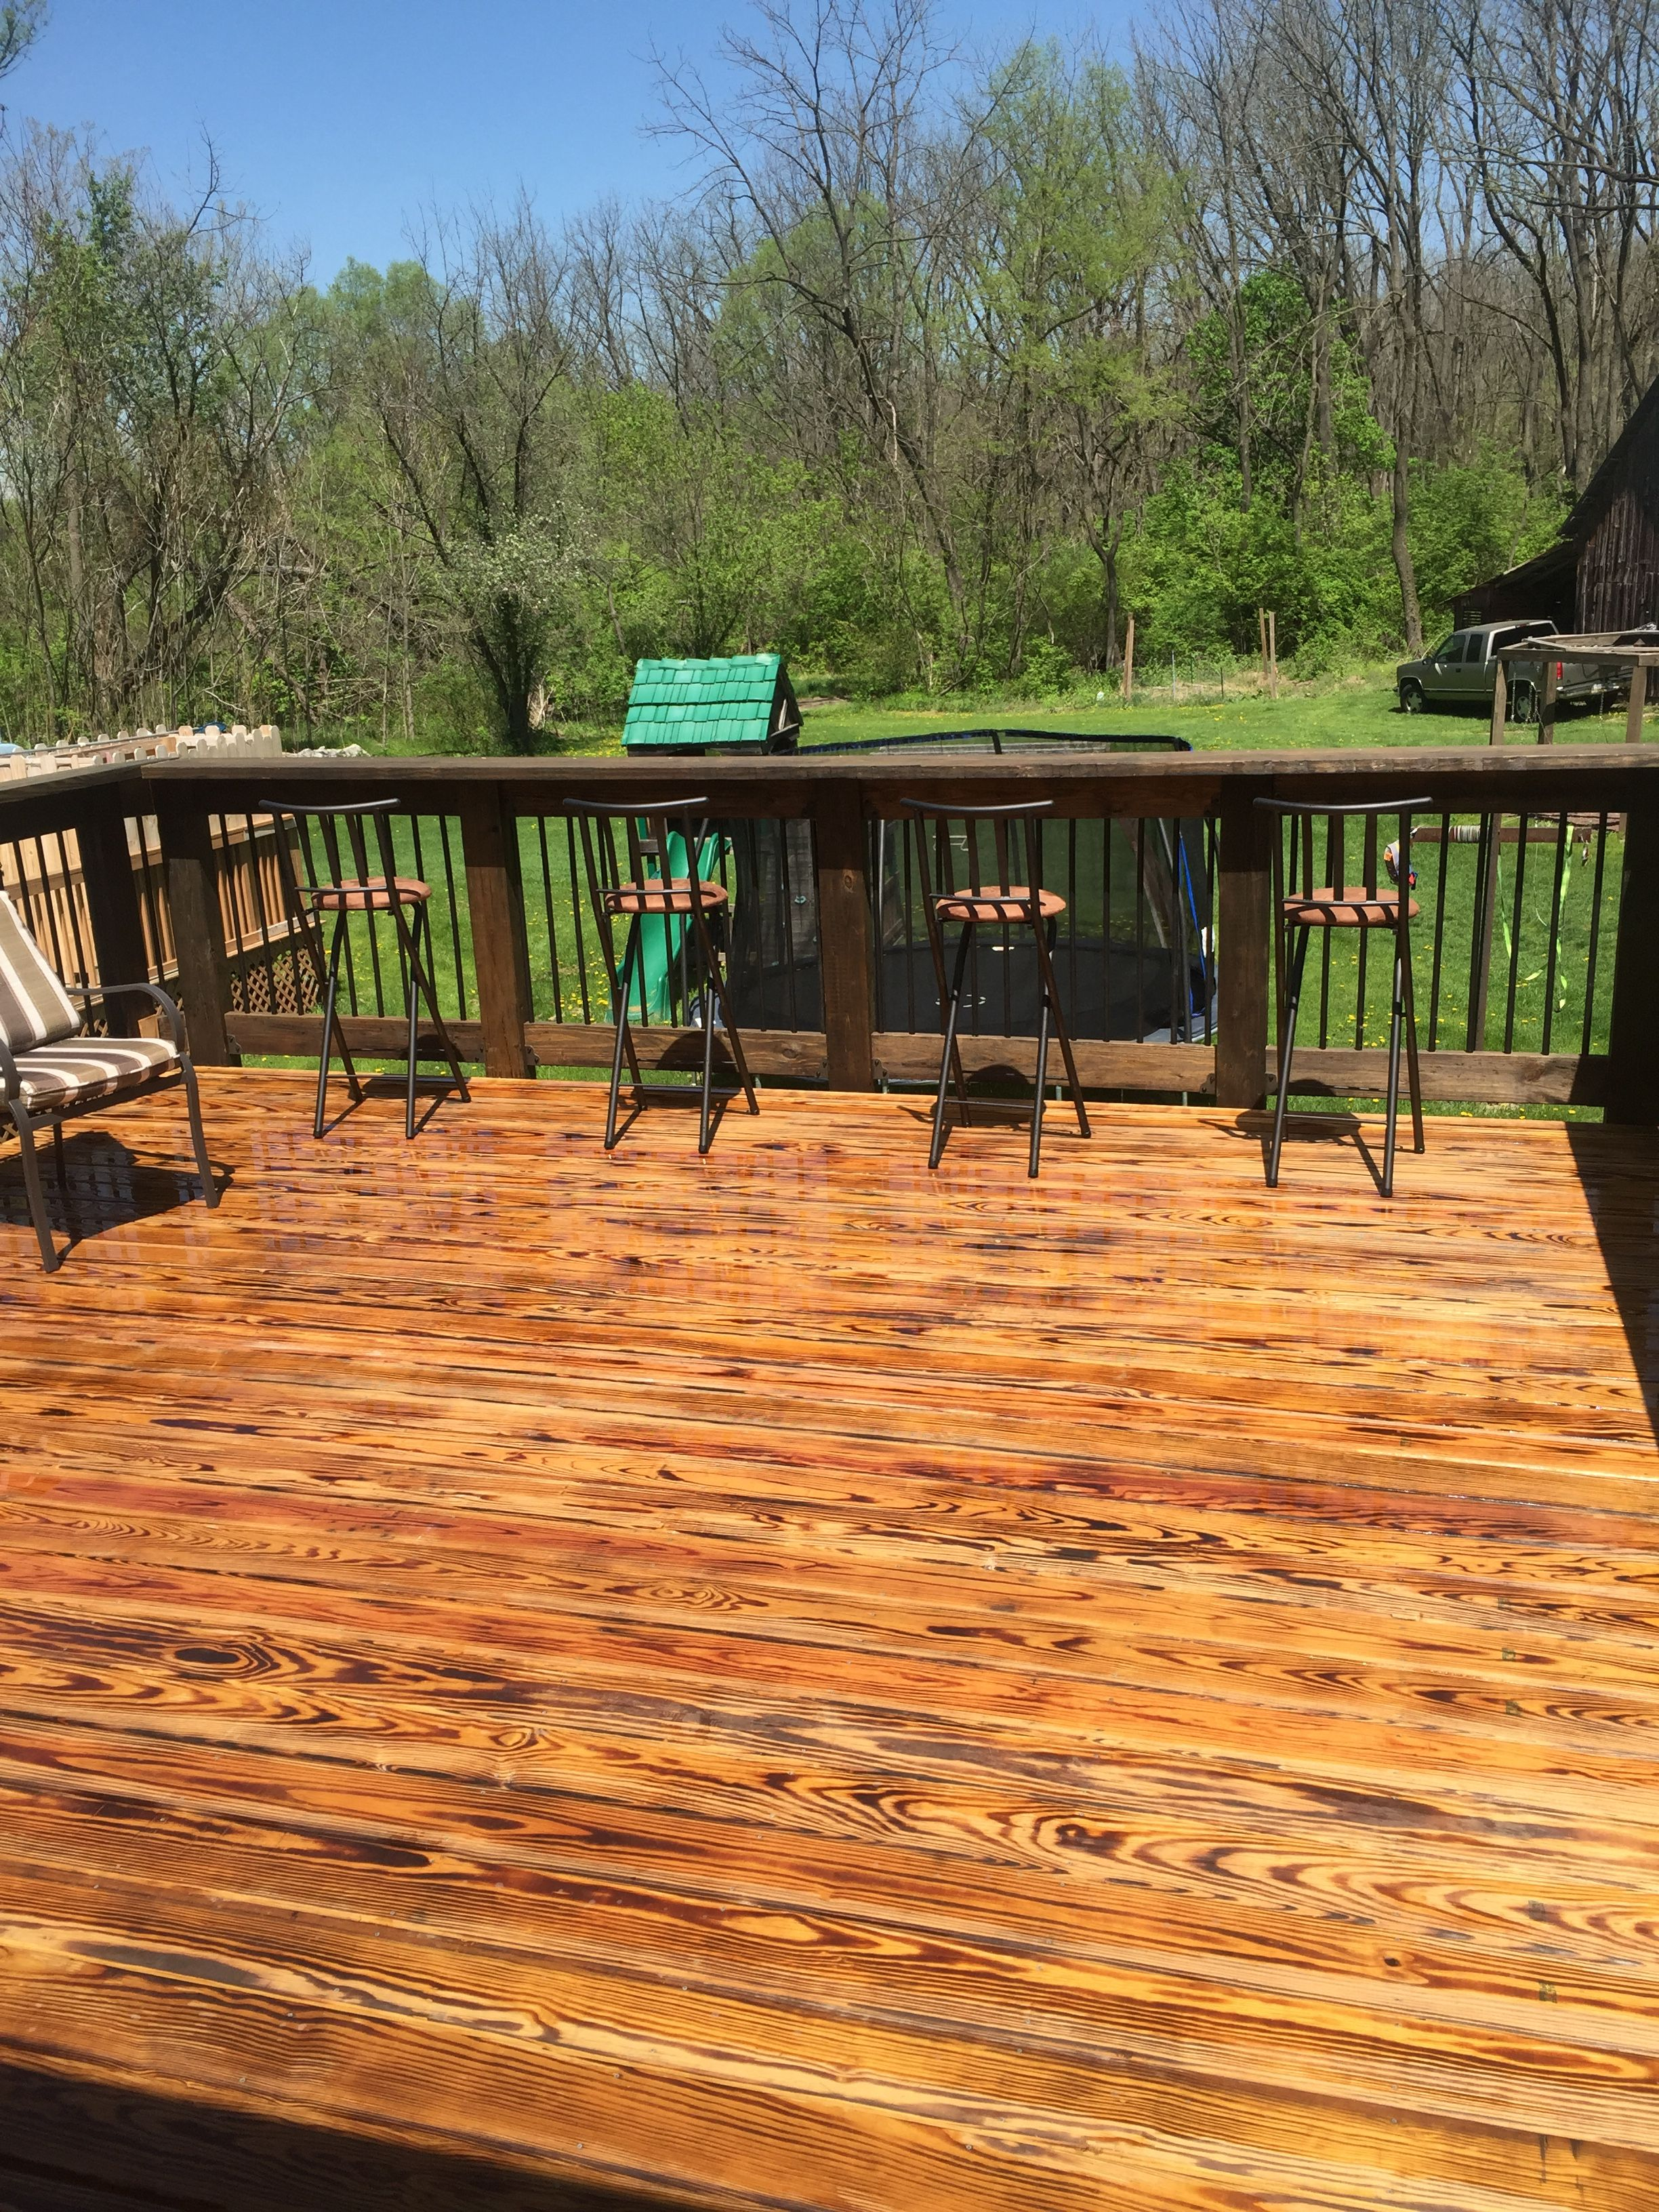 Torched Deck Burnt Wood Deck Wood Deck Wood Deck Stain Burnt Wood Finish